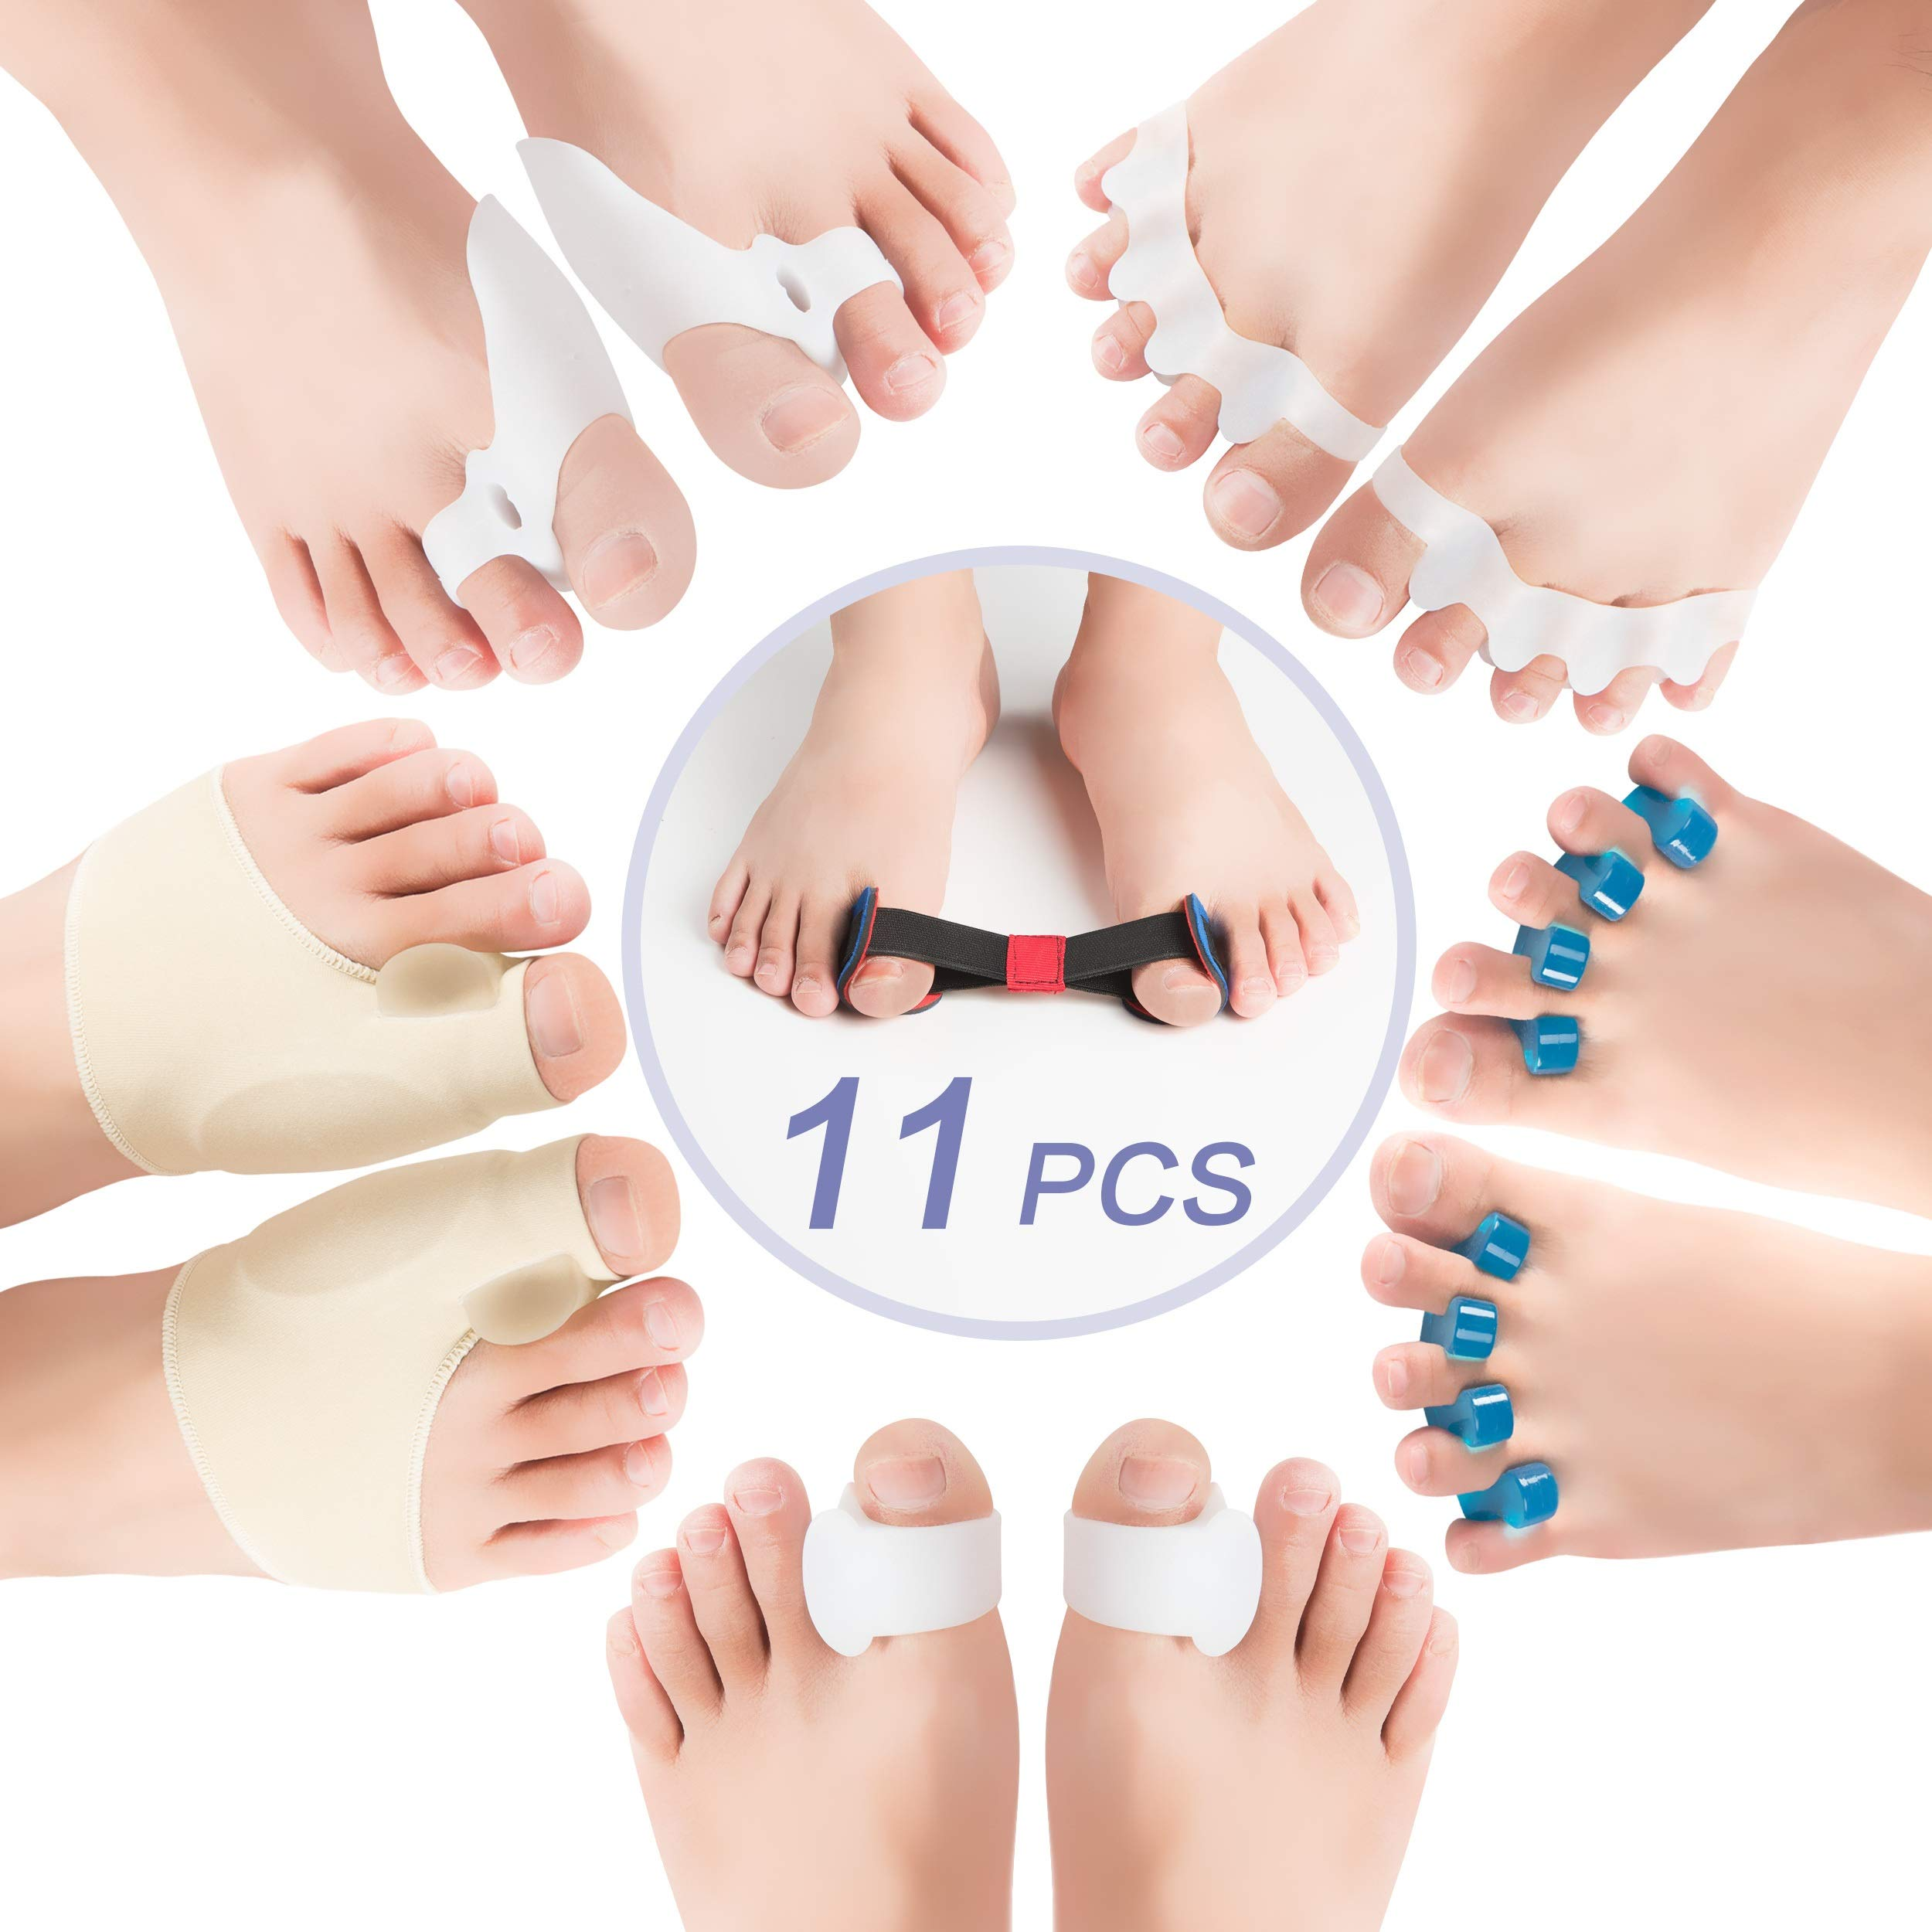 DR SelfCare-Orthopedic Hallux Valgus Bunion Corrector & Big Toe Relief for Women & Men | Gel Protector, Pain Treatment & Support | Tailor's Bunion - Hammer Toe Straightener Braces Spacer by DR SelfCare